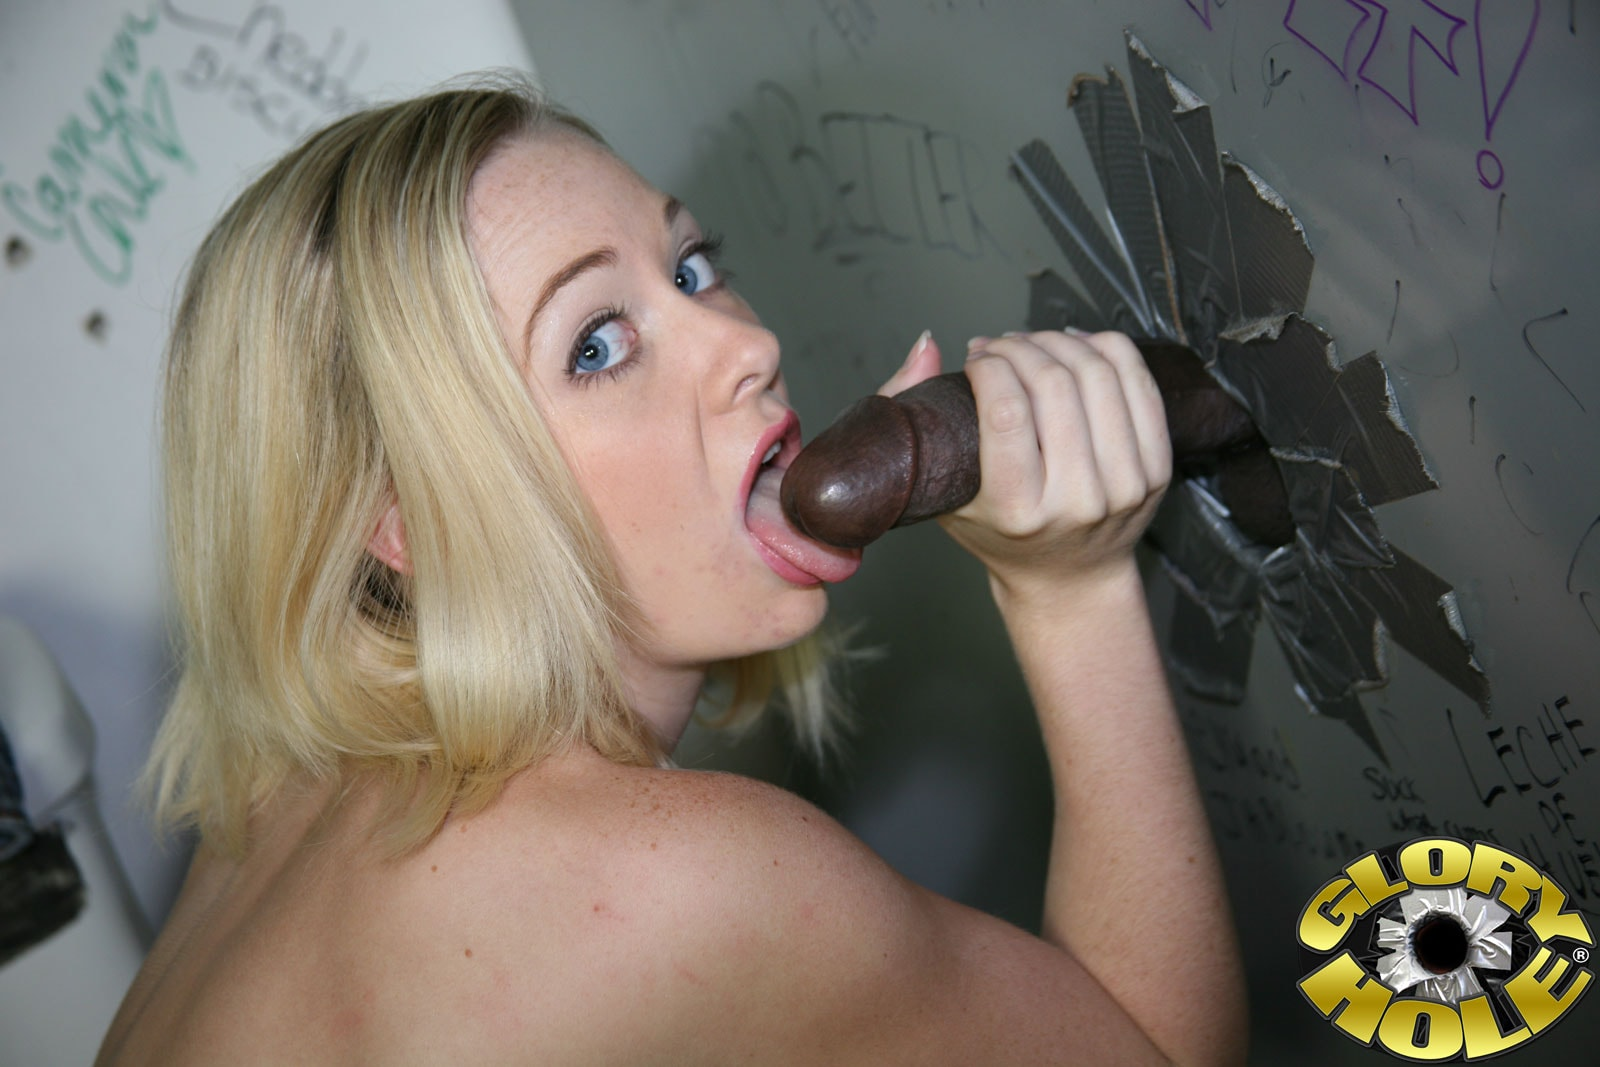 Glory hole porn vids, jasmine st clair gang bang video